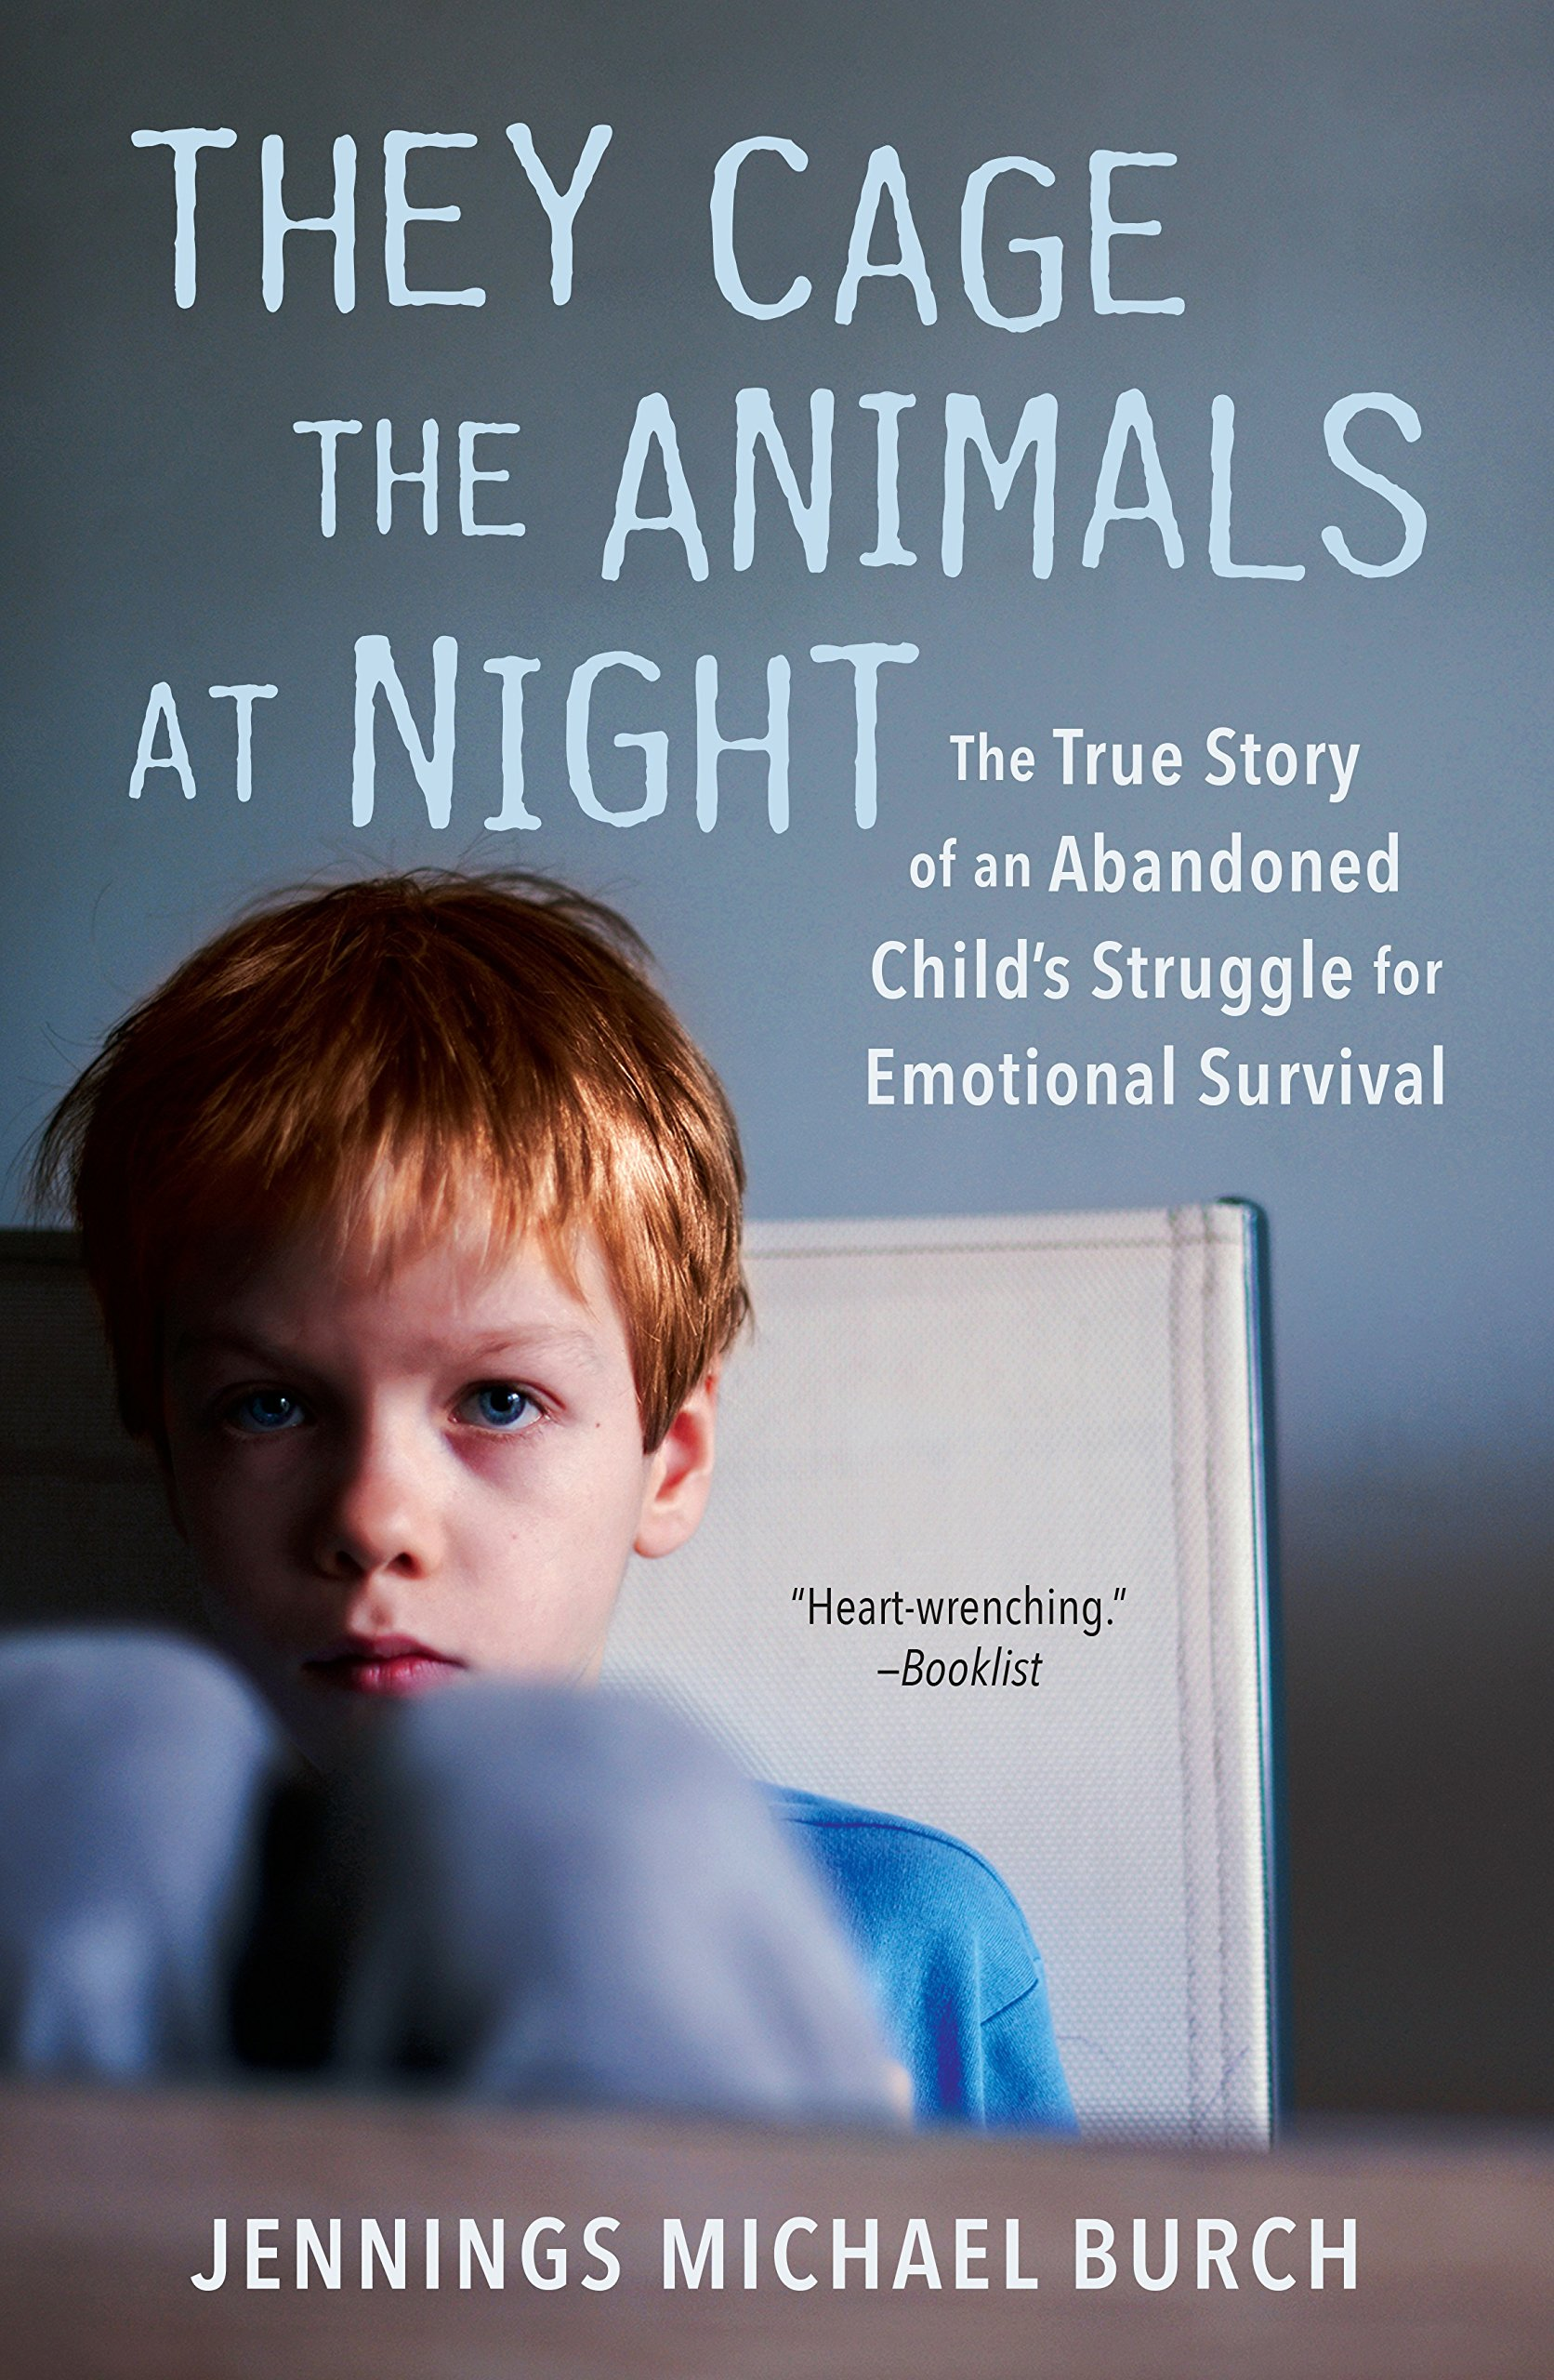 They Cage The Animals At Night  The True Story Of An Abandoned Child's Struggle For Emotional Survival  Signet   English Edition